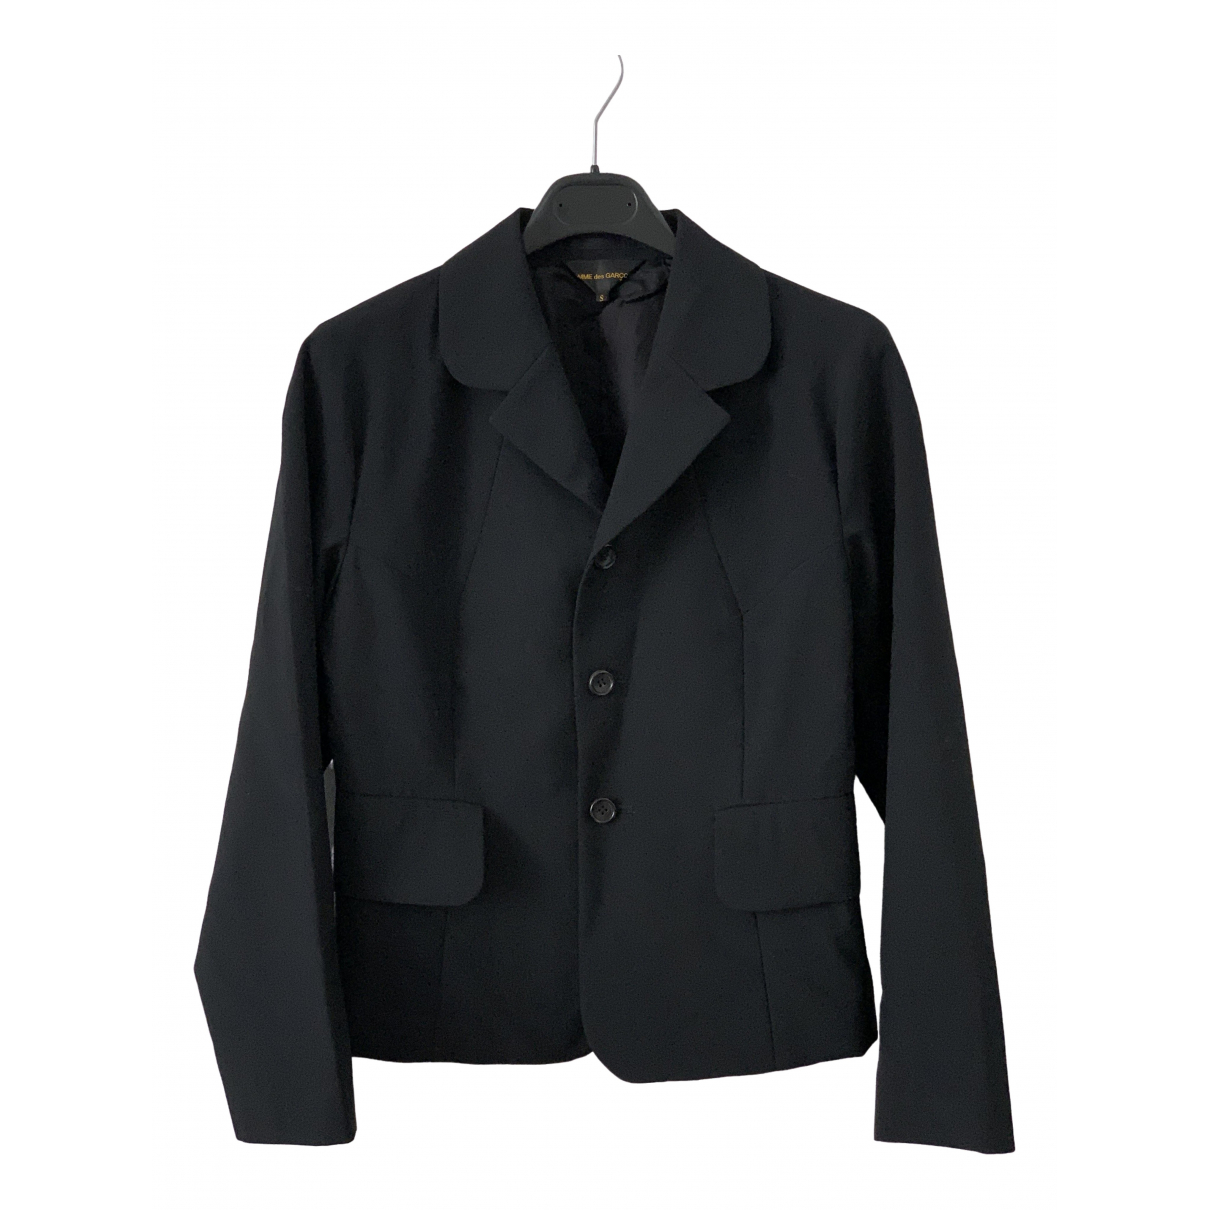 Comme Des Garcons \N Black Wool jacket for Women S International